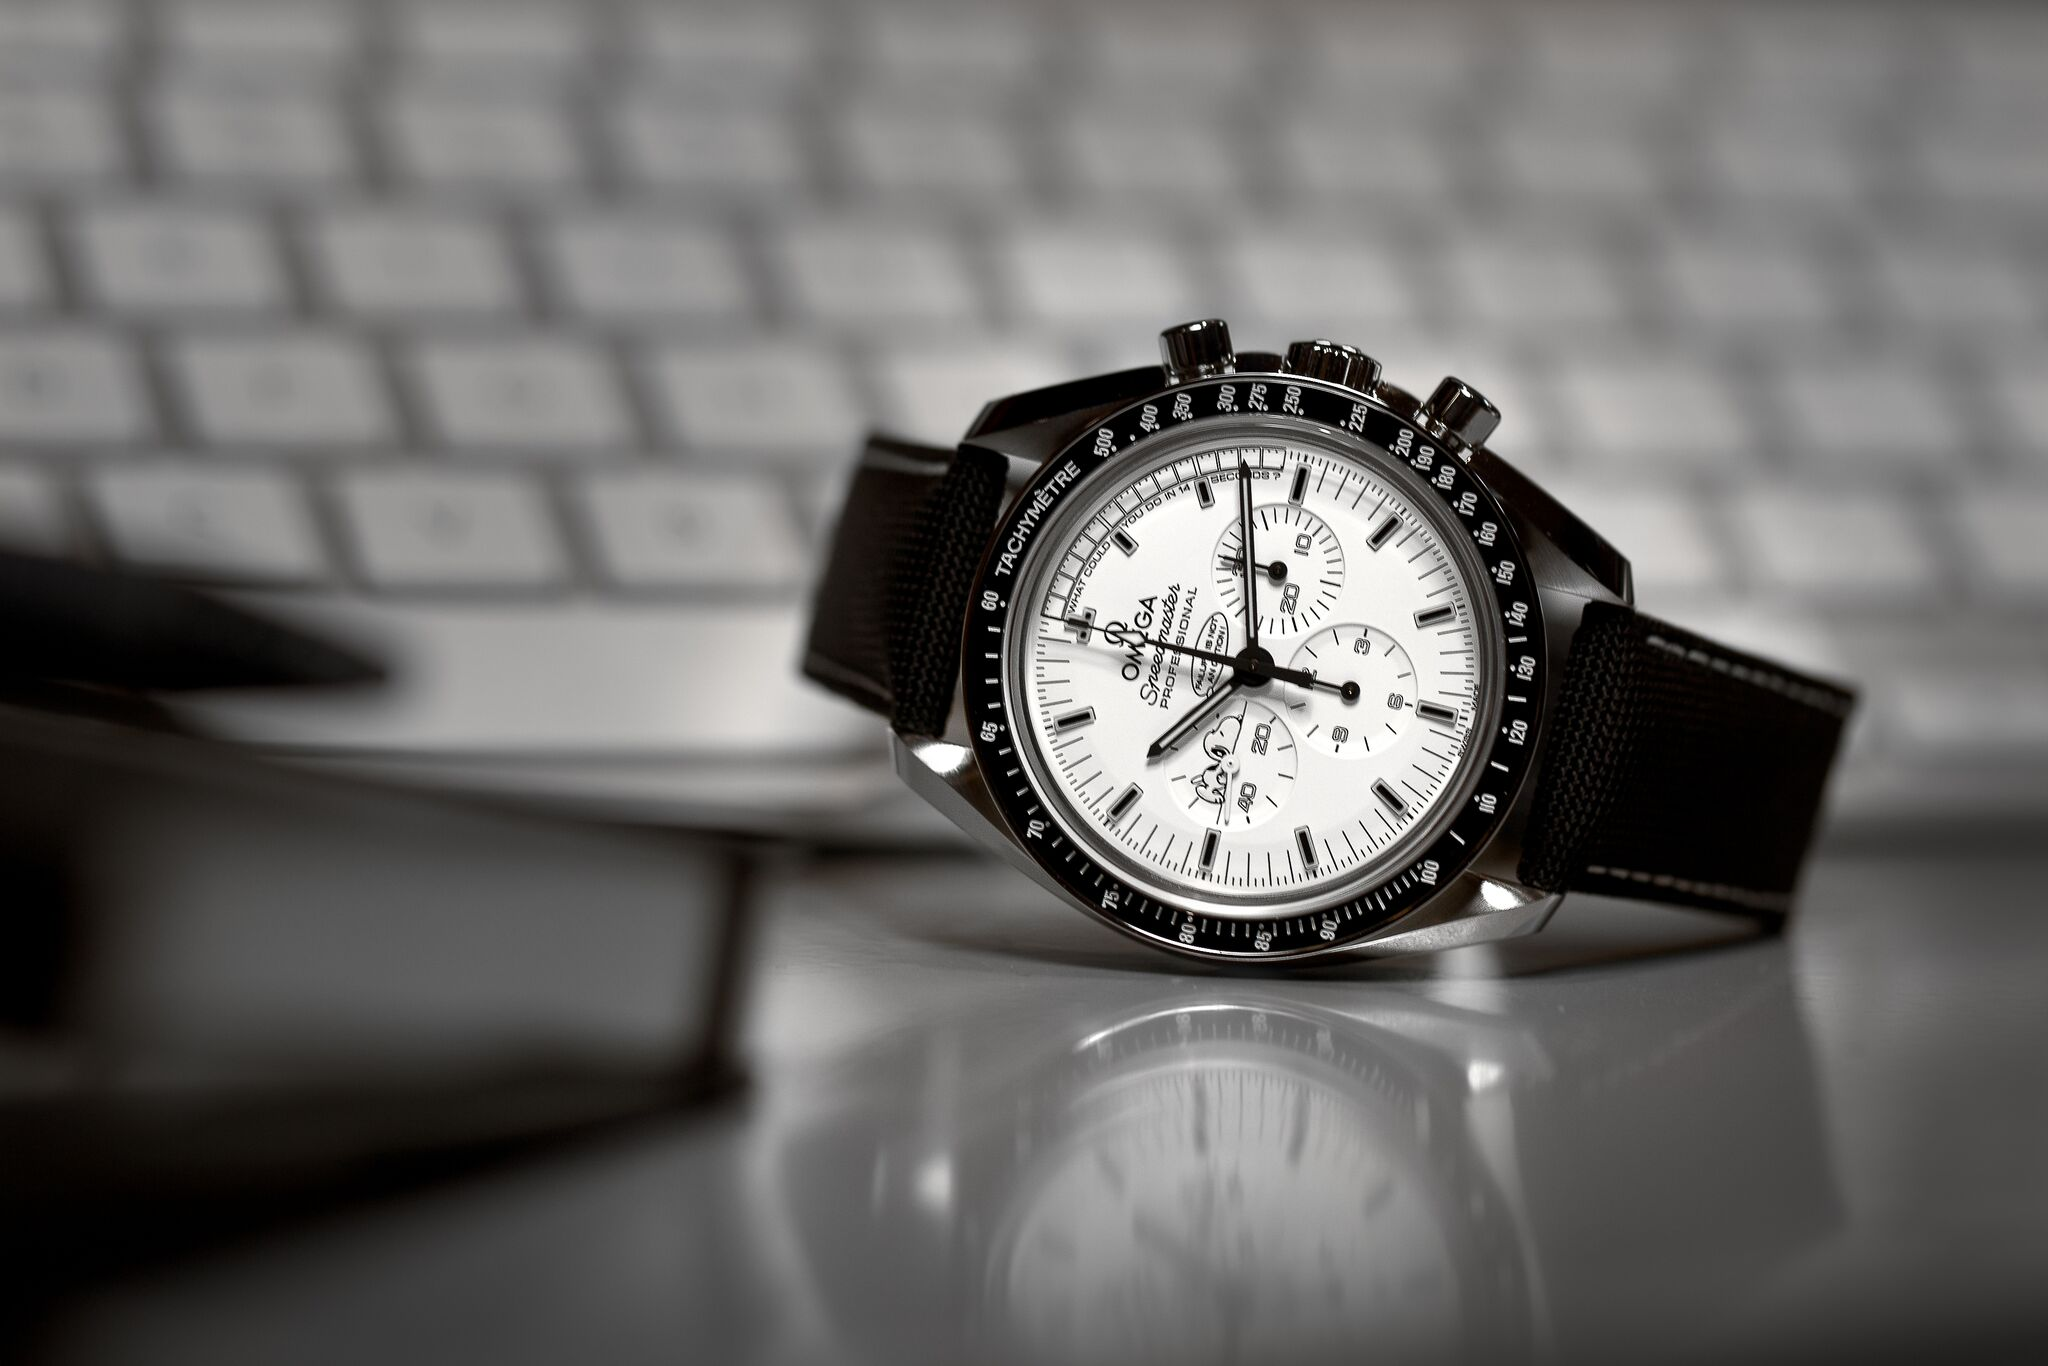 Omega Speedmaster Professional Moonwatch Silver Snoopy: Apollo XIII 45th Anniversary